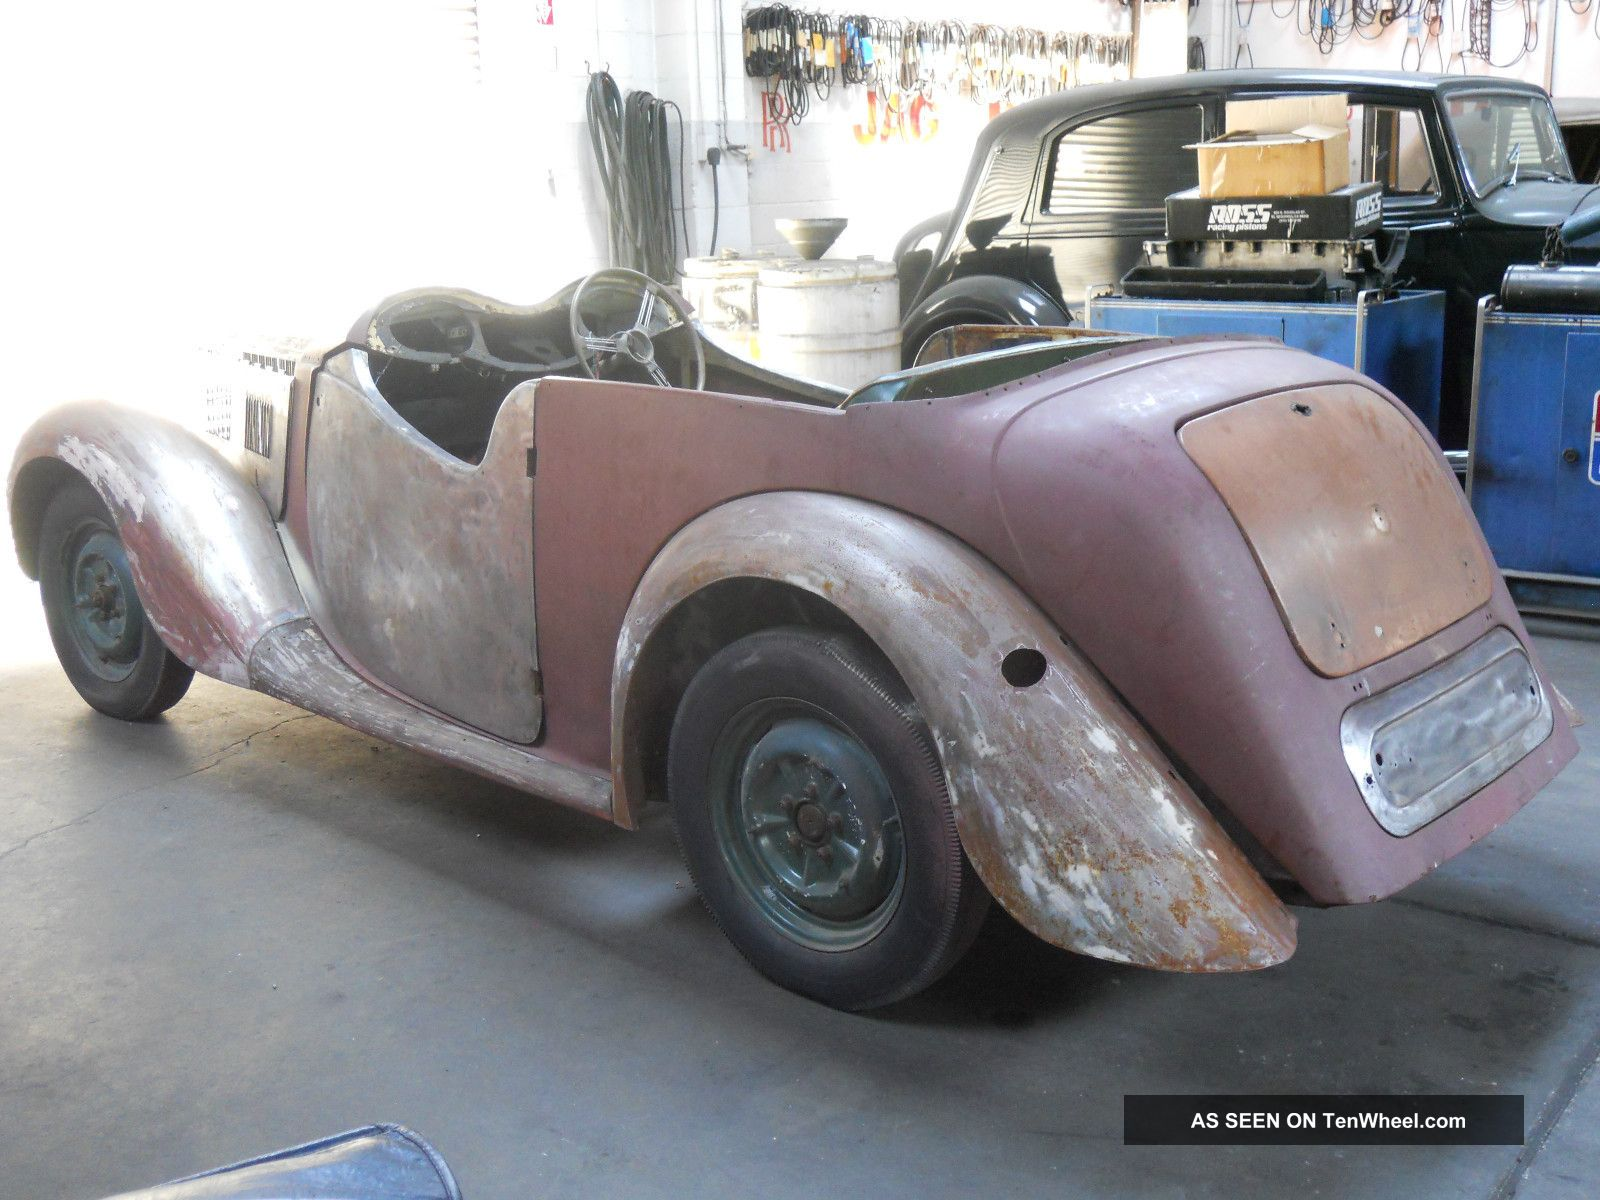 1950 Mg Y Tourer (mg Yt) Other photo